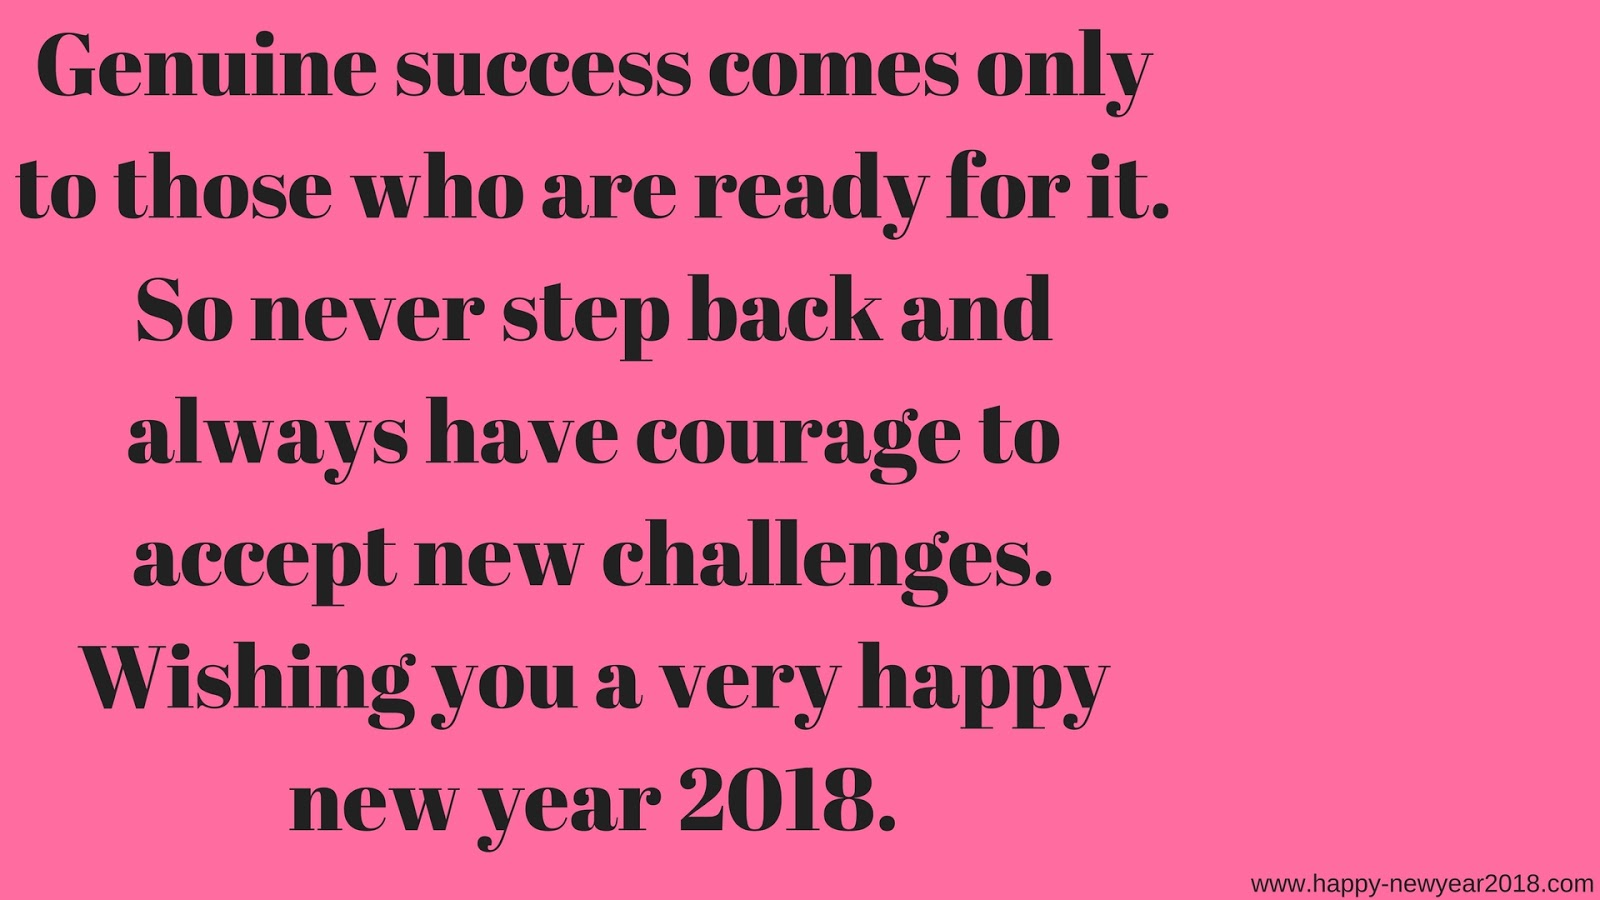 happy new year images happy new year 2018 gif